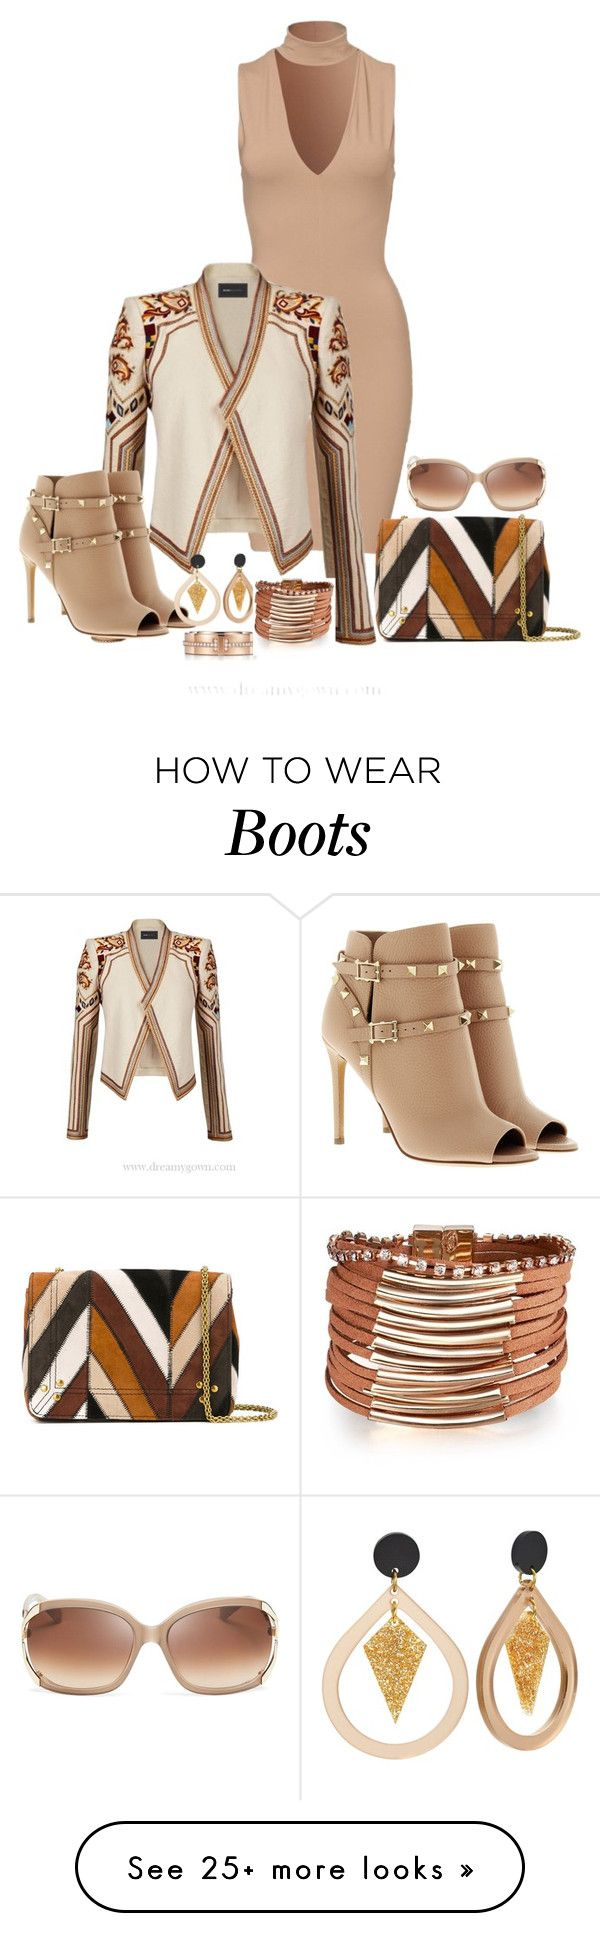 """Styling"" by freida-adams on Polyvore featuring BCBGMAXAZRIA, Valentino, Jérôme Dreyfuss, Tiffany & Co. and Kate Spade"